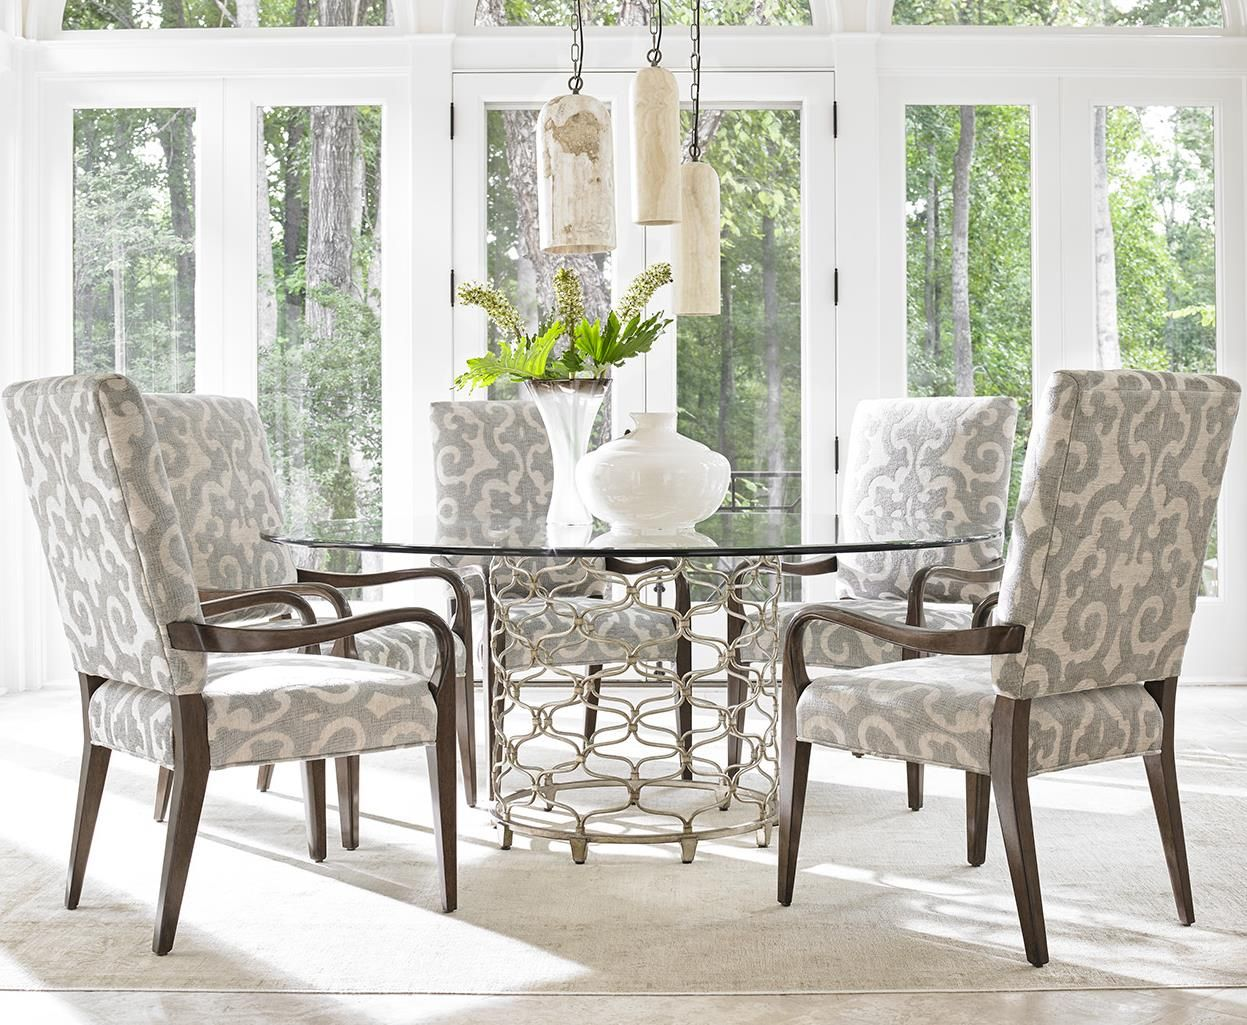 Laurel Canyon Six Piece Dining Set With Bollinger Table And Sierra Customizable Chairs By Lexington At Baer S Furniture Round Dinning Room Table Dining Furniture Casual Dining Room Set